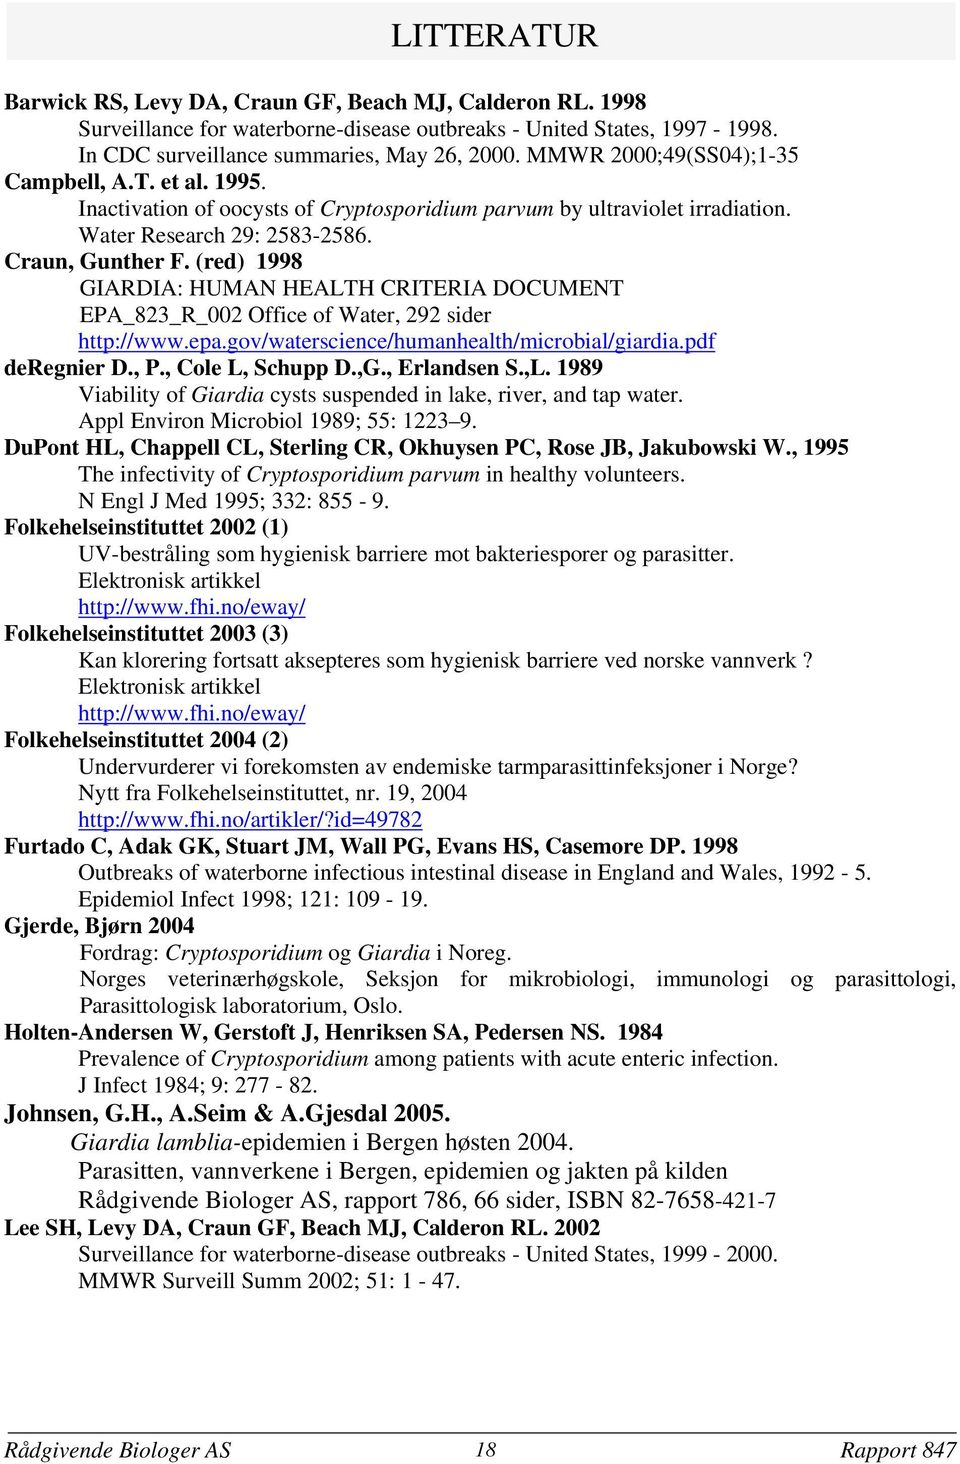 (red) 1998 GIARDIA: HUMAN HEALTH CRITERIA DOCUMENT EPA_823_R_002 Office of Water, 292 sider http://www.epa.gov/waterscience/humanhealth/microbial/giardia.pdf deregnier D., P., Cole L, Schupp D.,G.